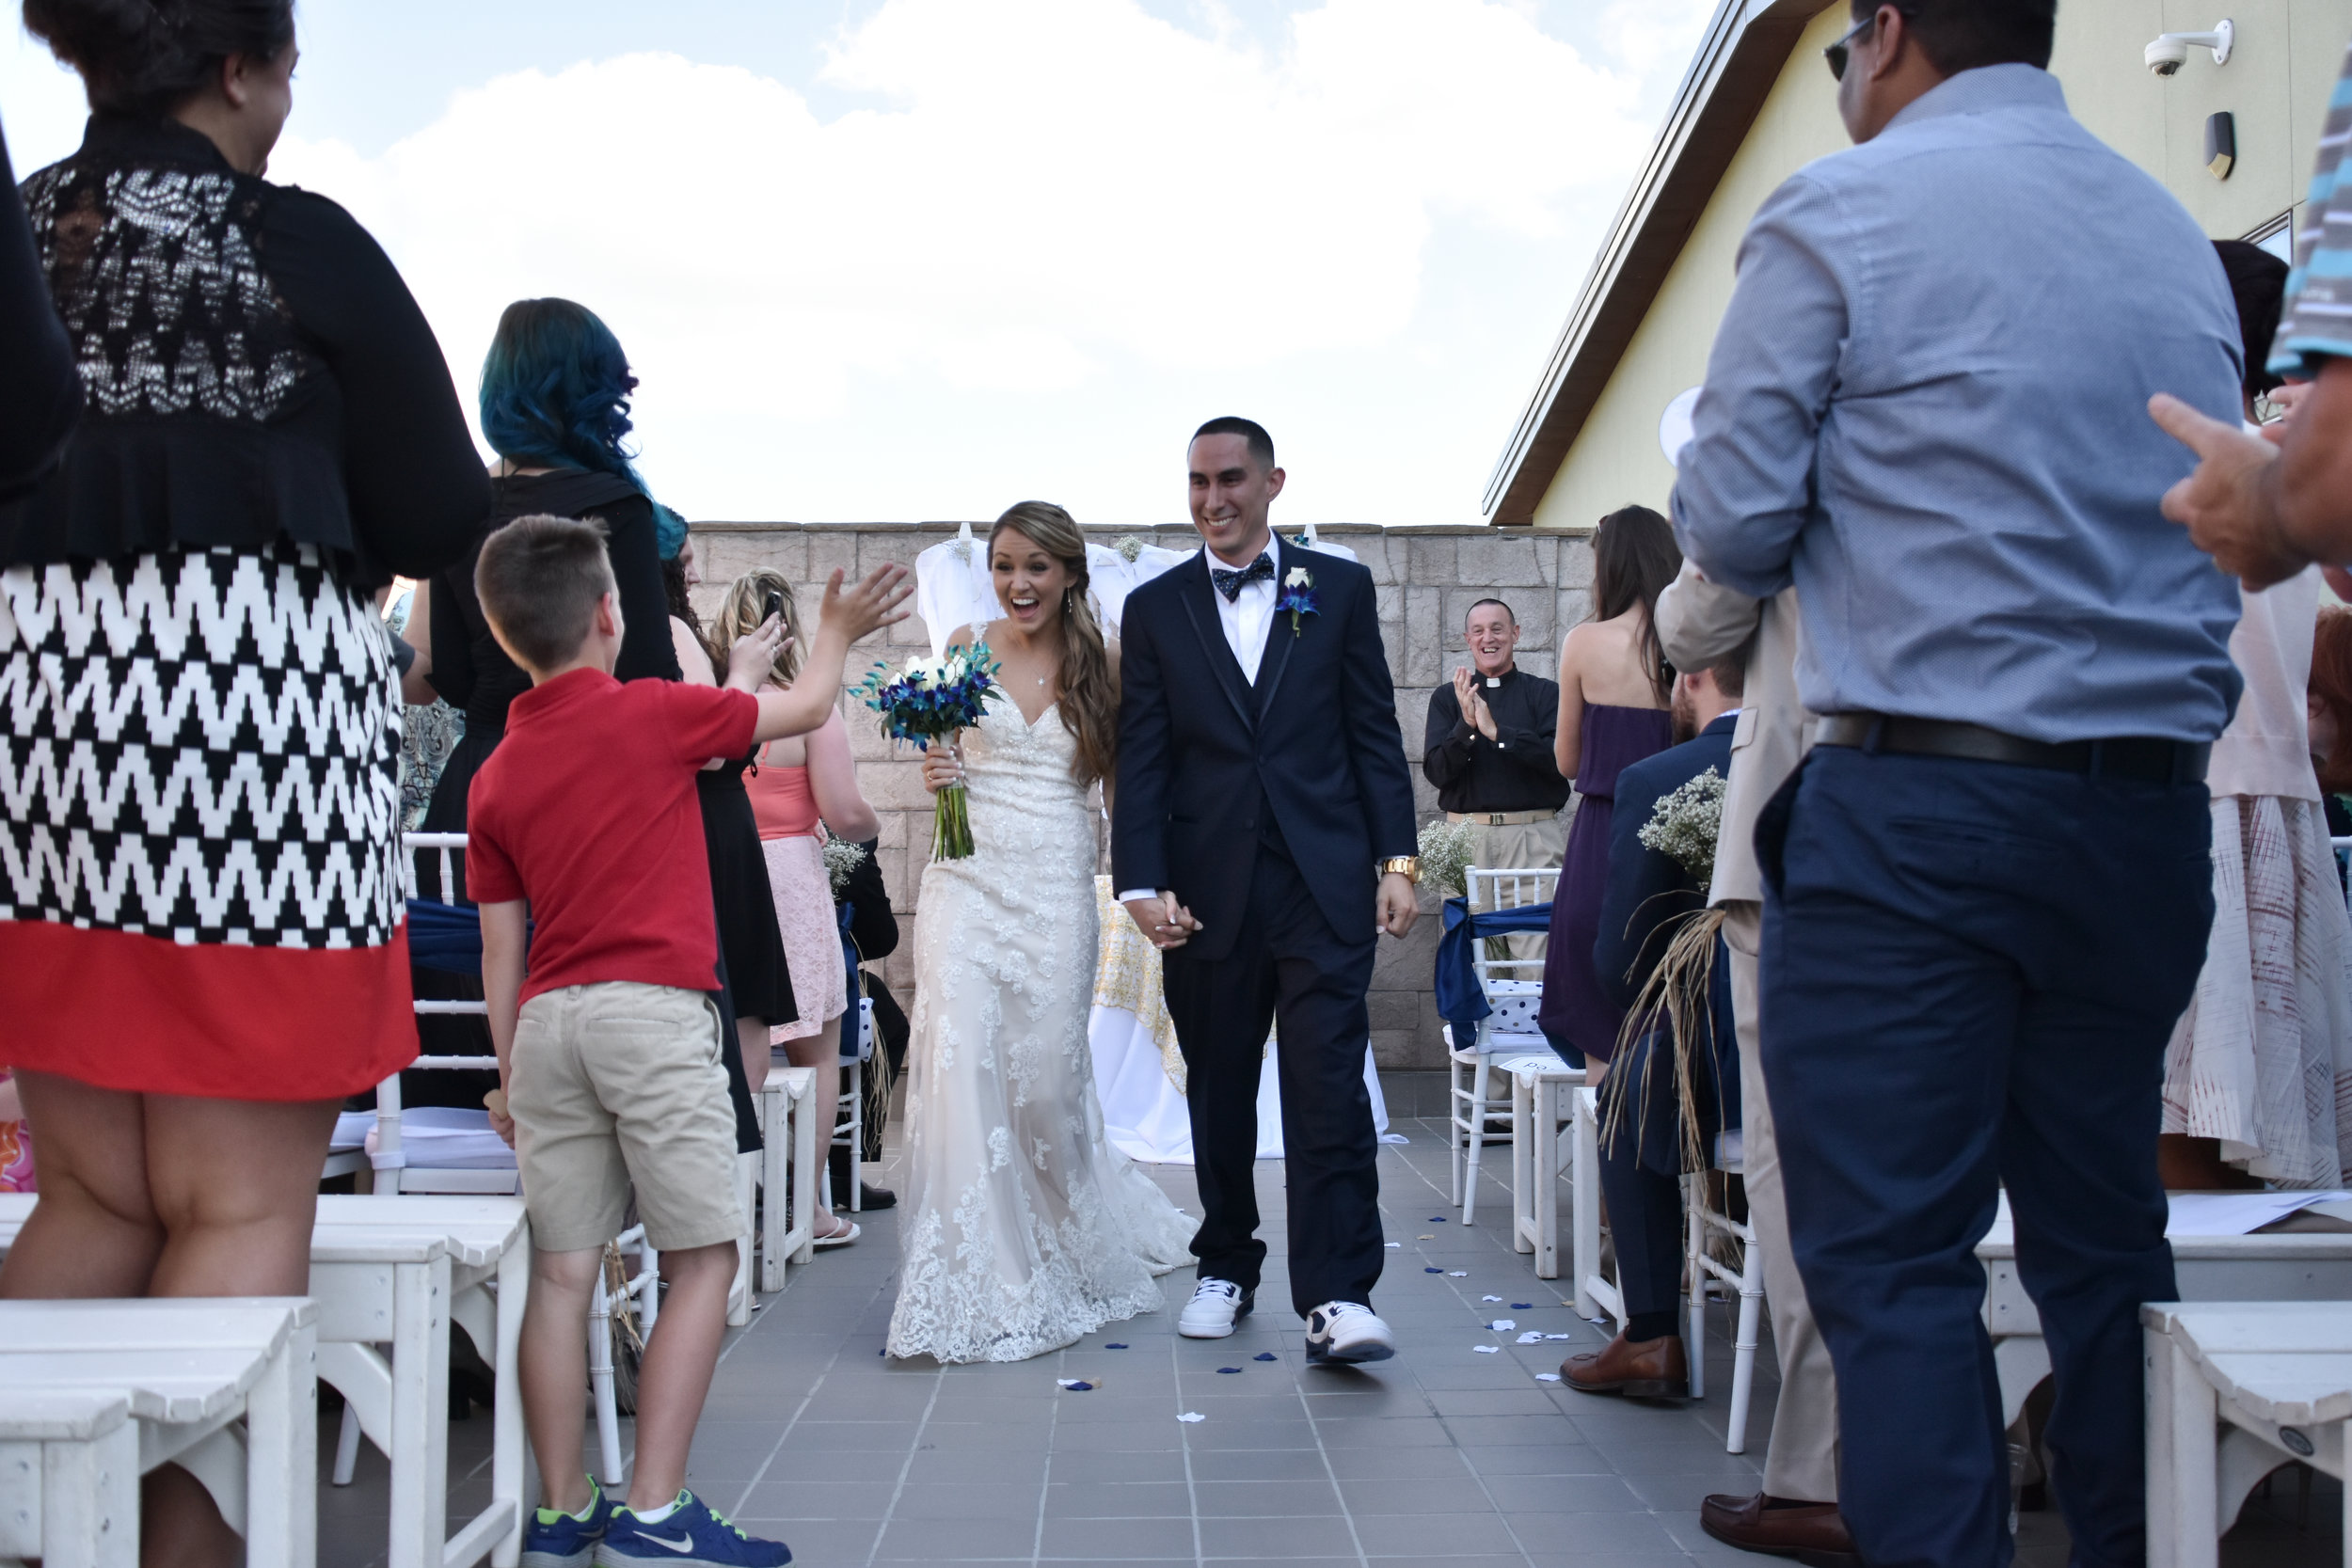 Egress. - Bride and groom walking up the aisle after the wedding ceremony at Terraces on Sir Tyler in Wilmington, NC.